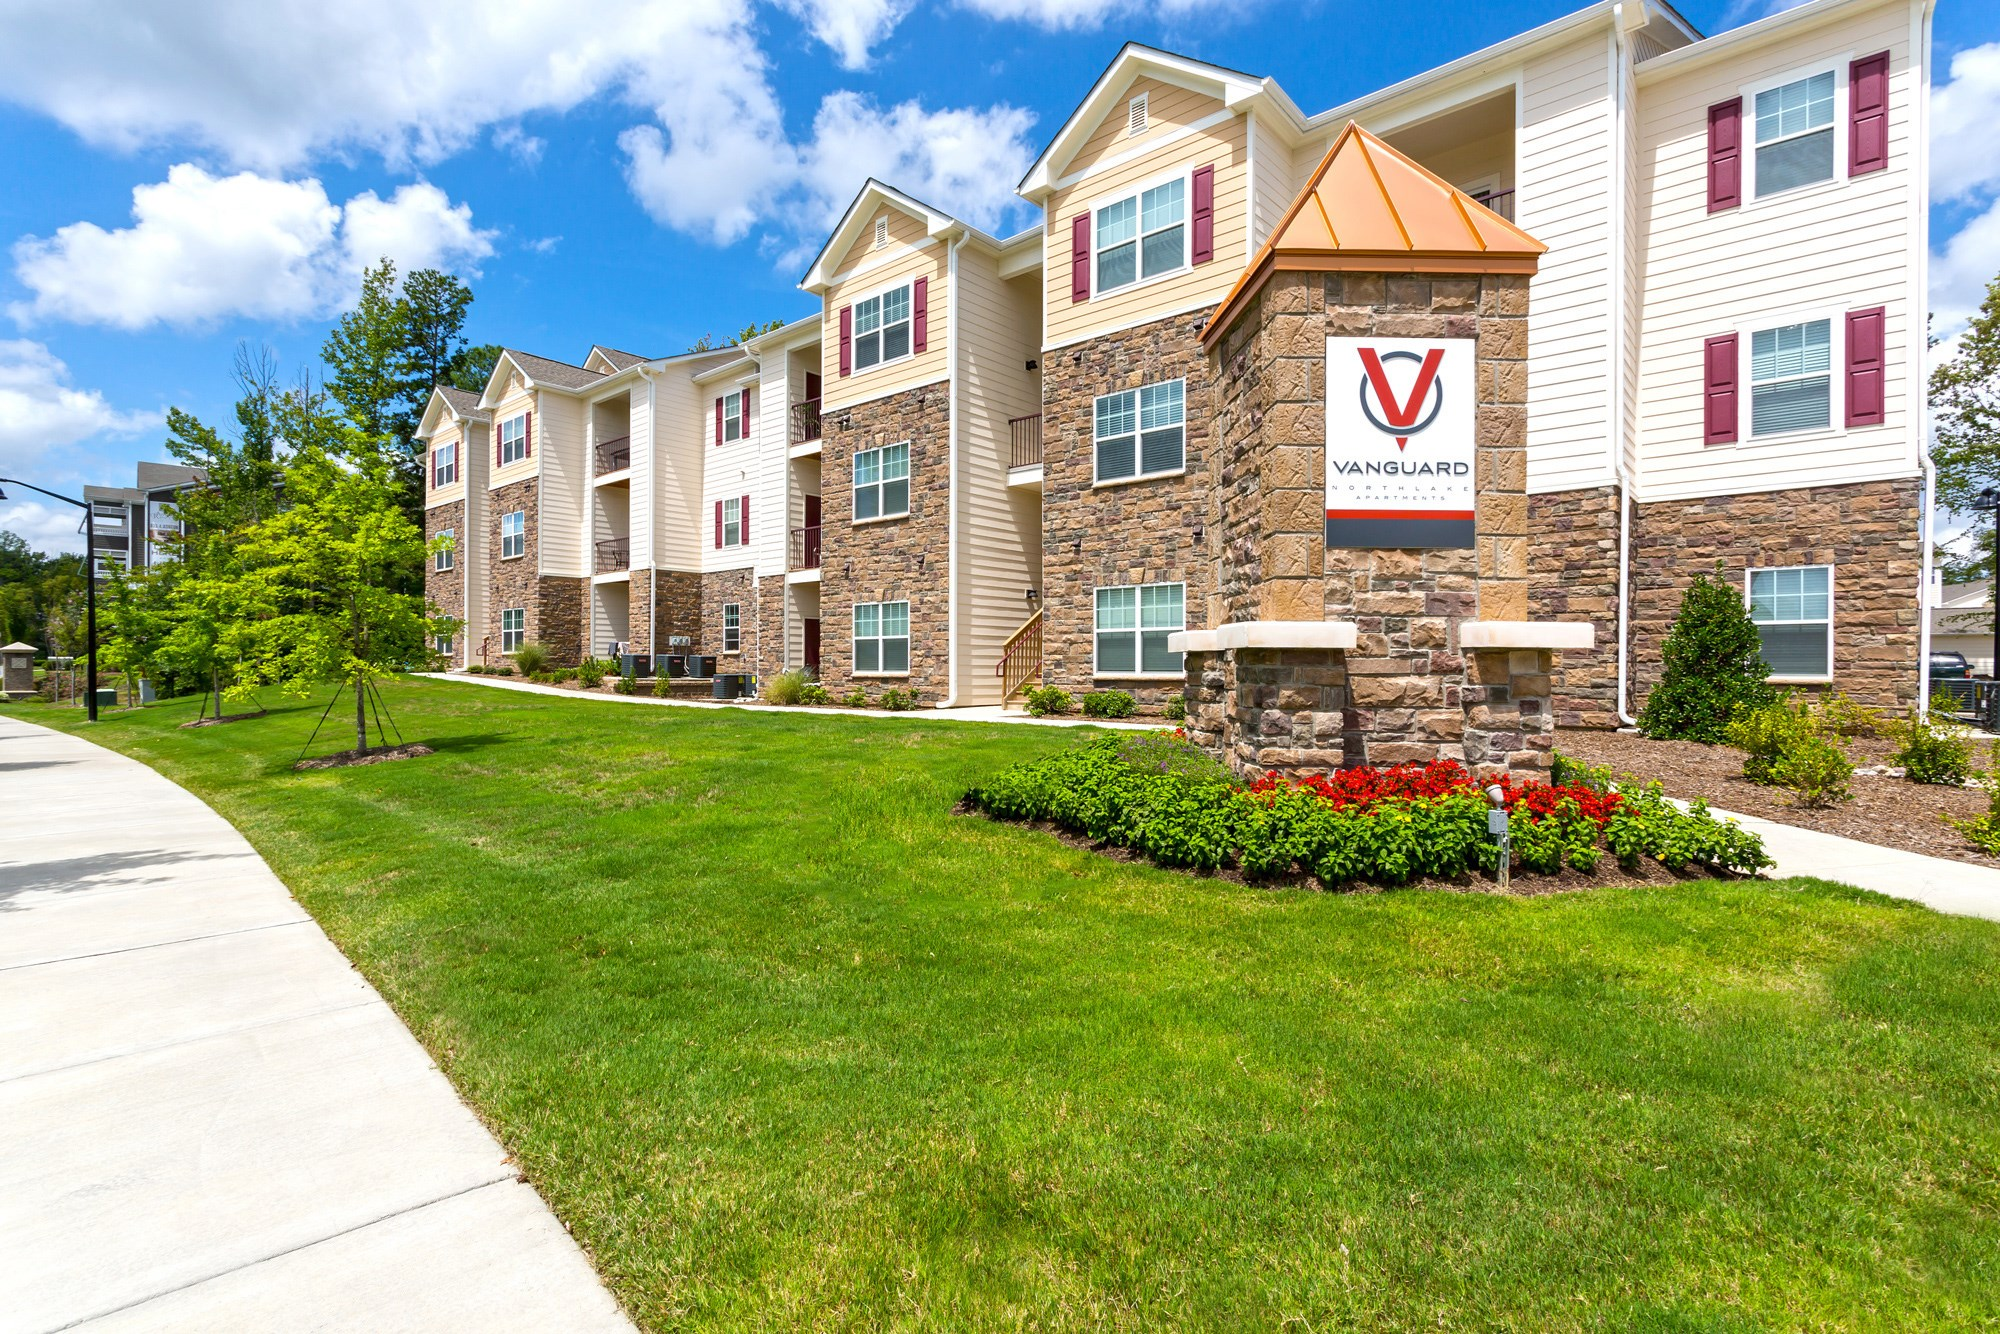 Exterior at Vanguard Northlake Apartments in Charlotte, NC